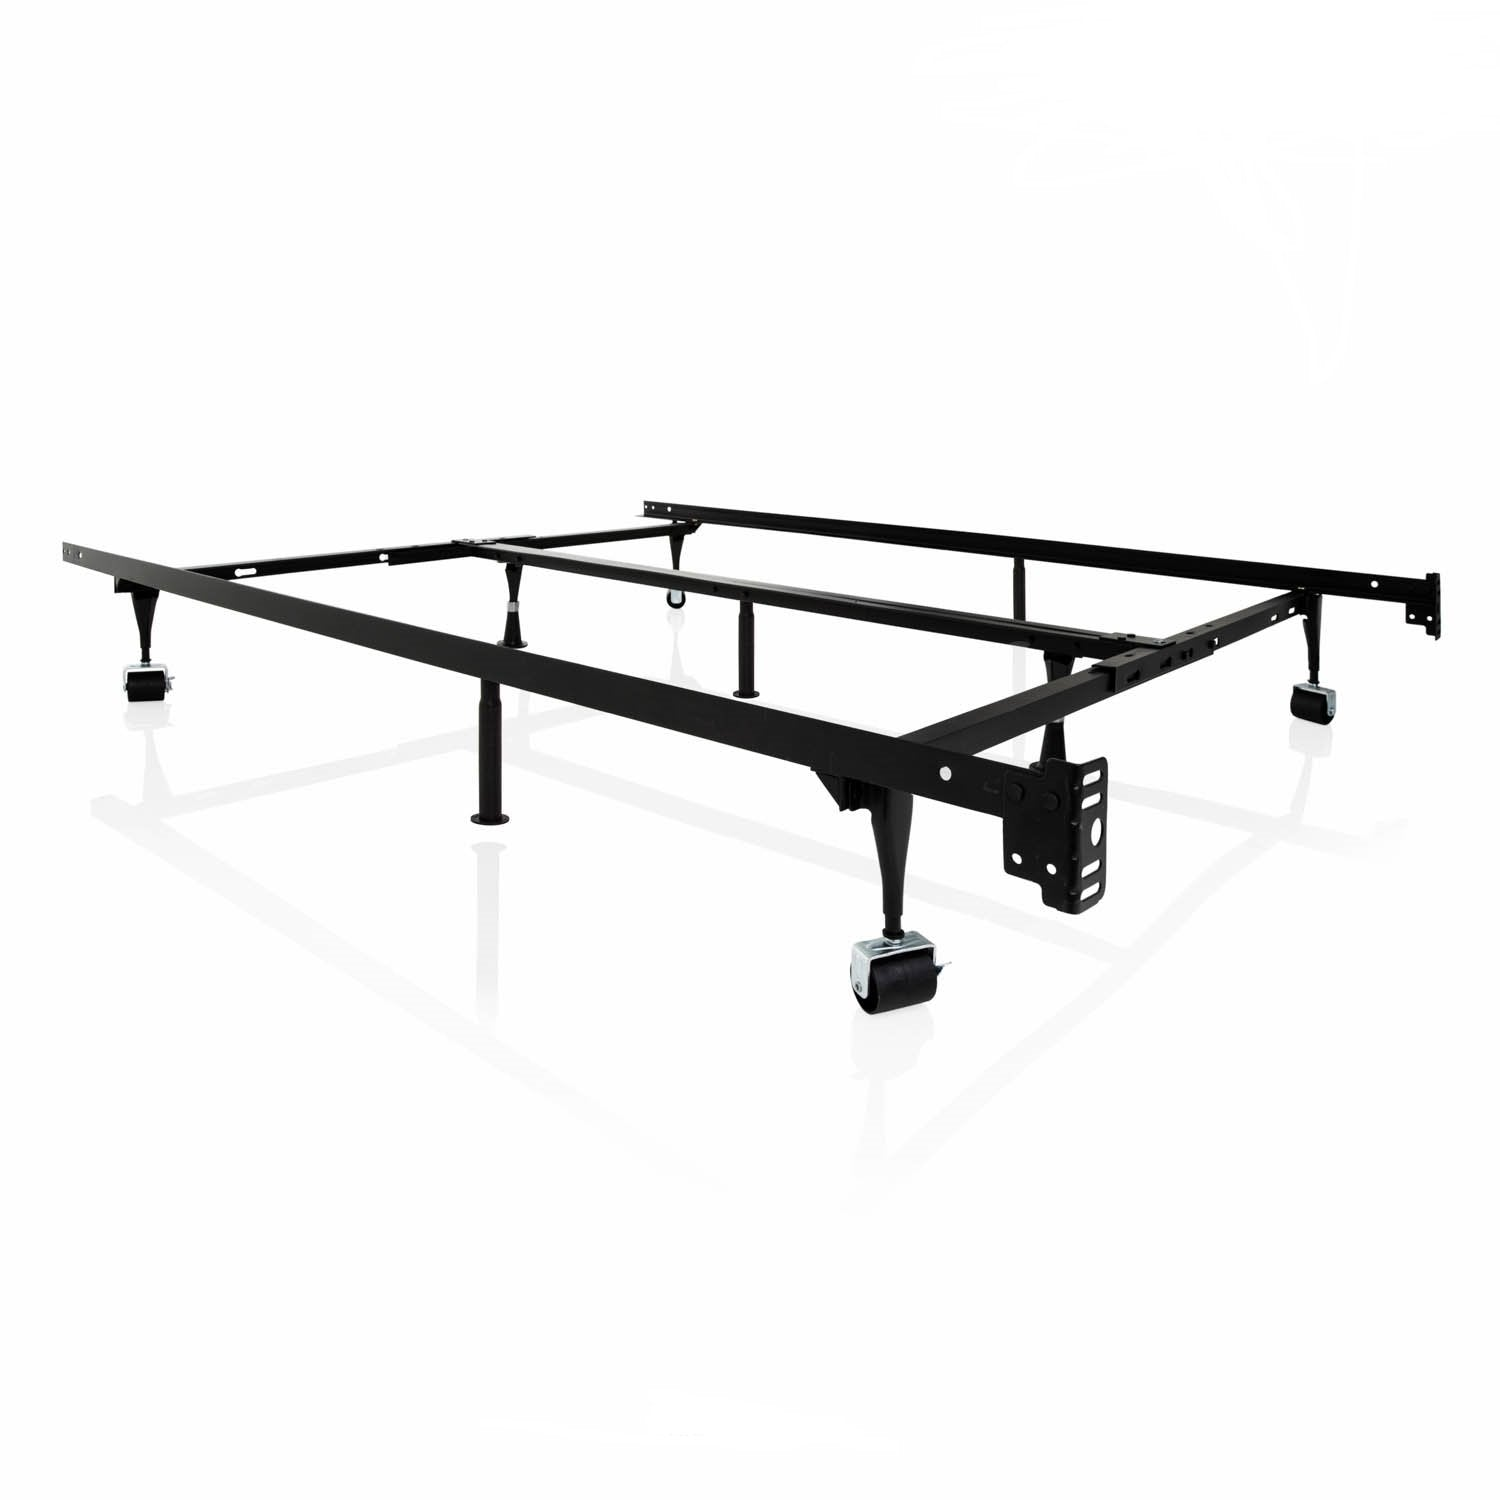 products system steel upright supreme murphy mattress bed frame model hardware